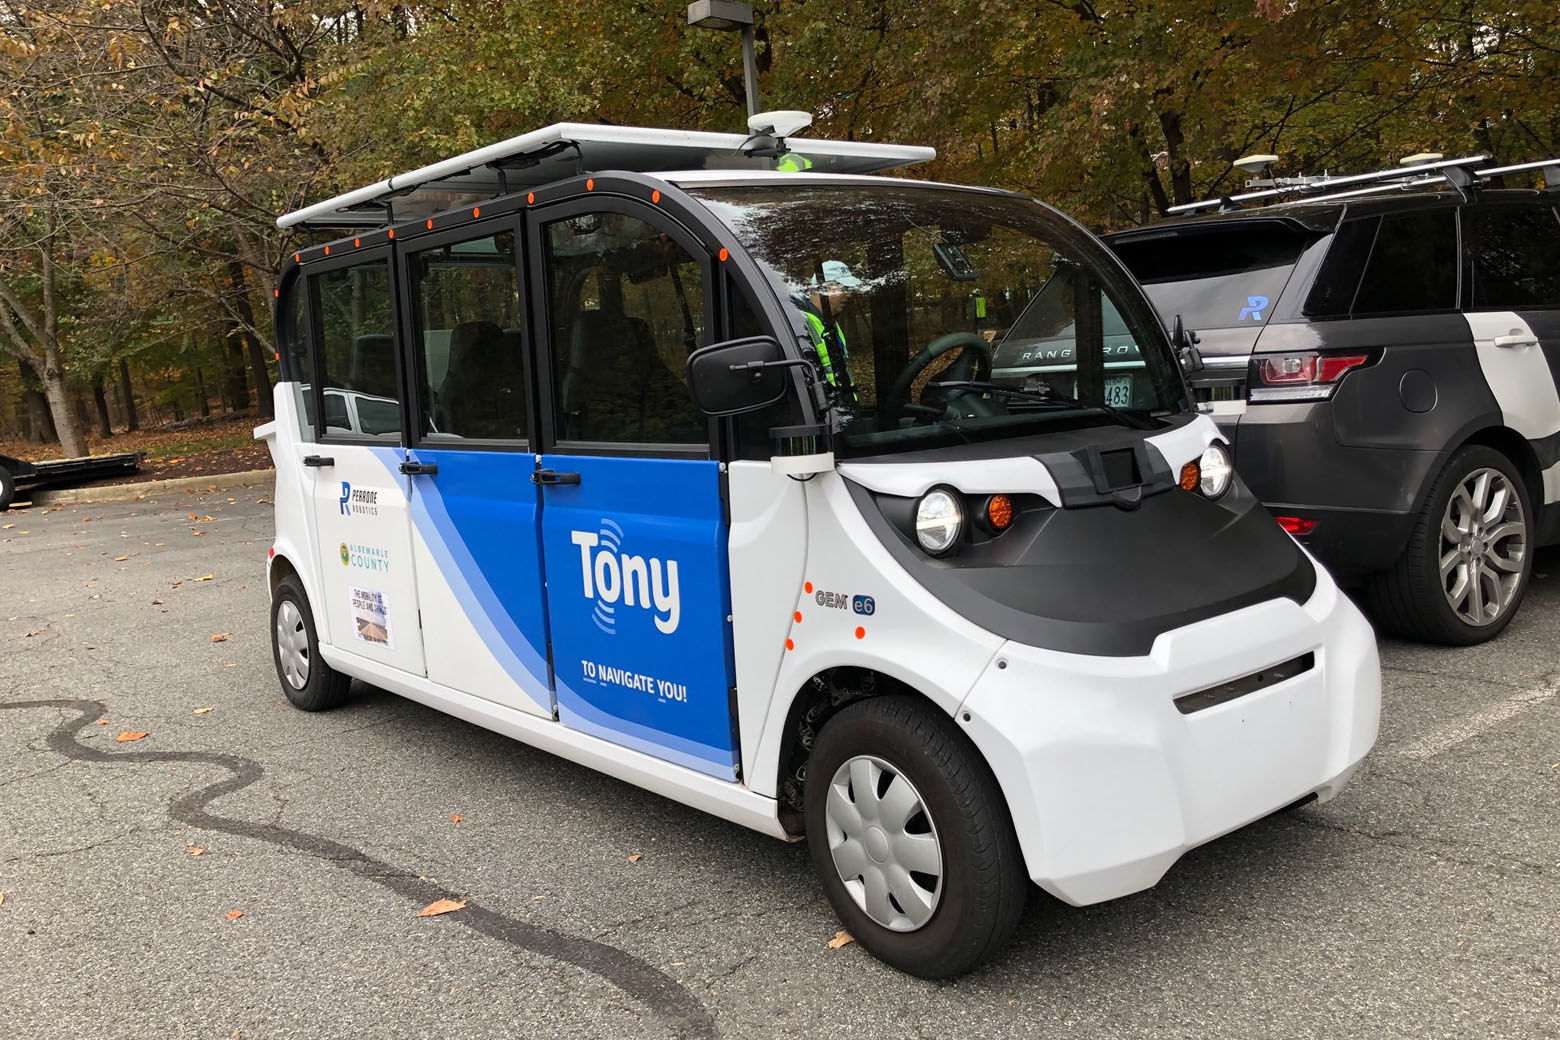 """TONY"""" -- short for """"to navigate you,"""" -- jus finished up a trial run in Crozet, Virginia. (WTOP/John Aaron)"""